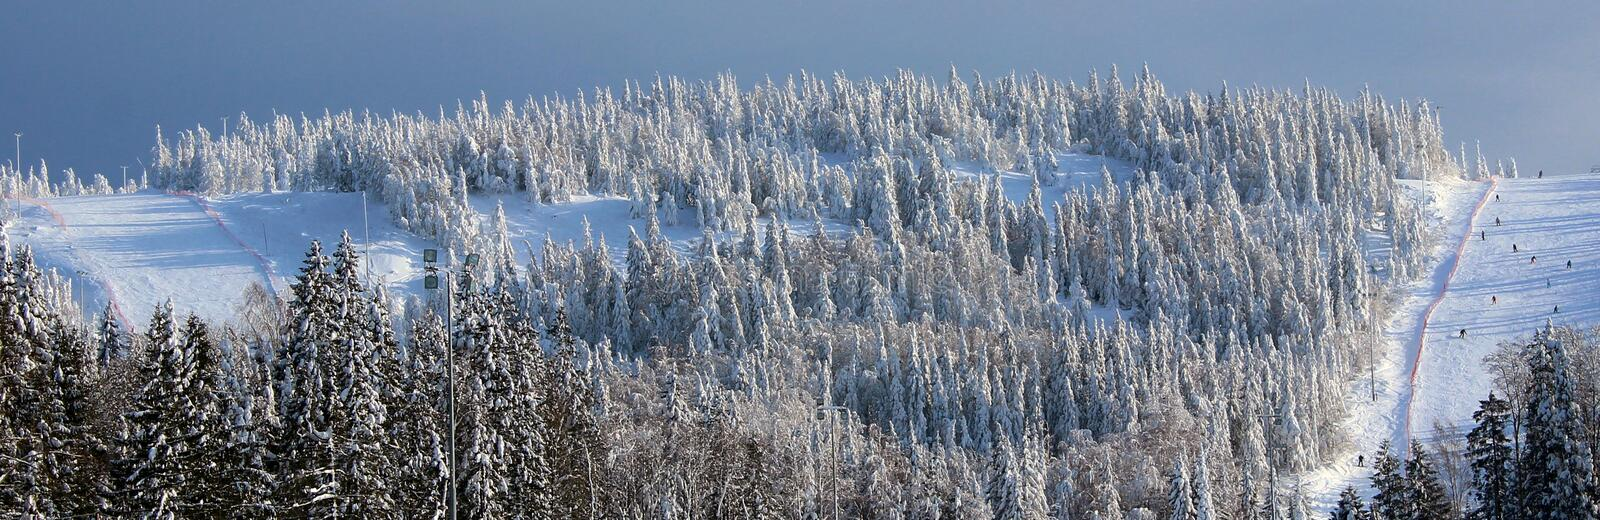 Mountain winter forest stock photography